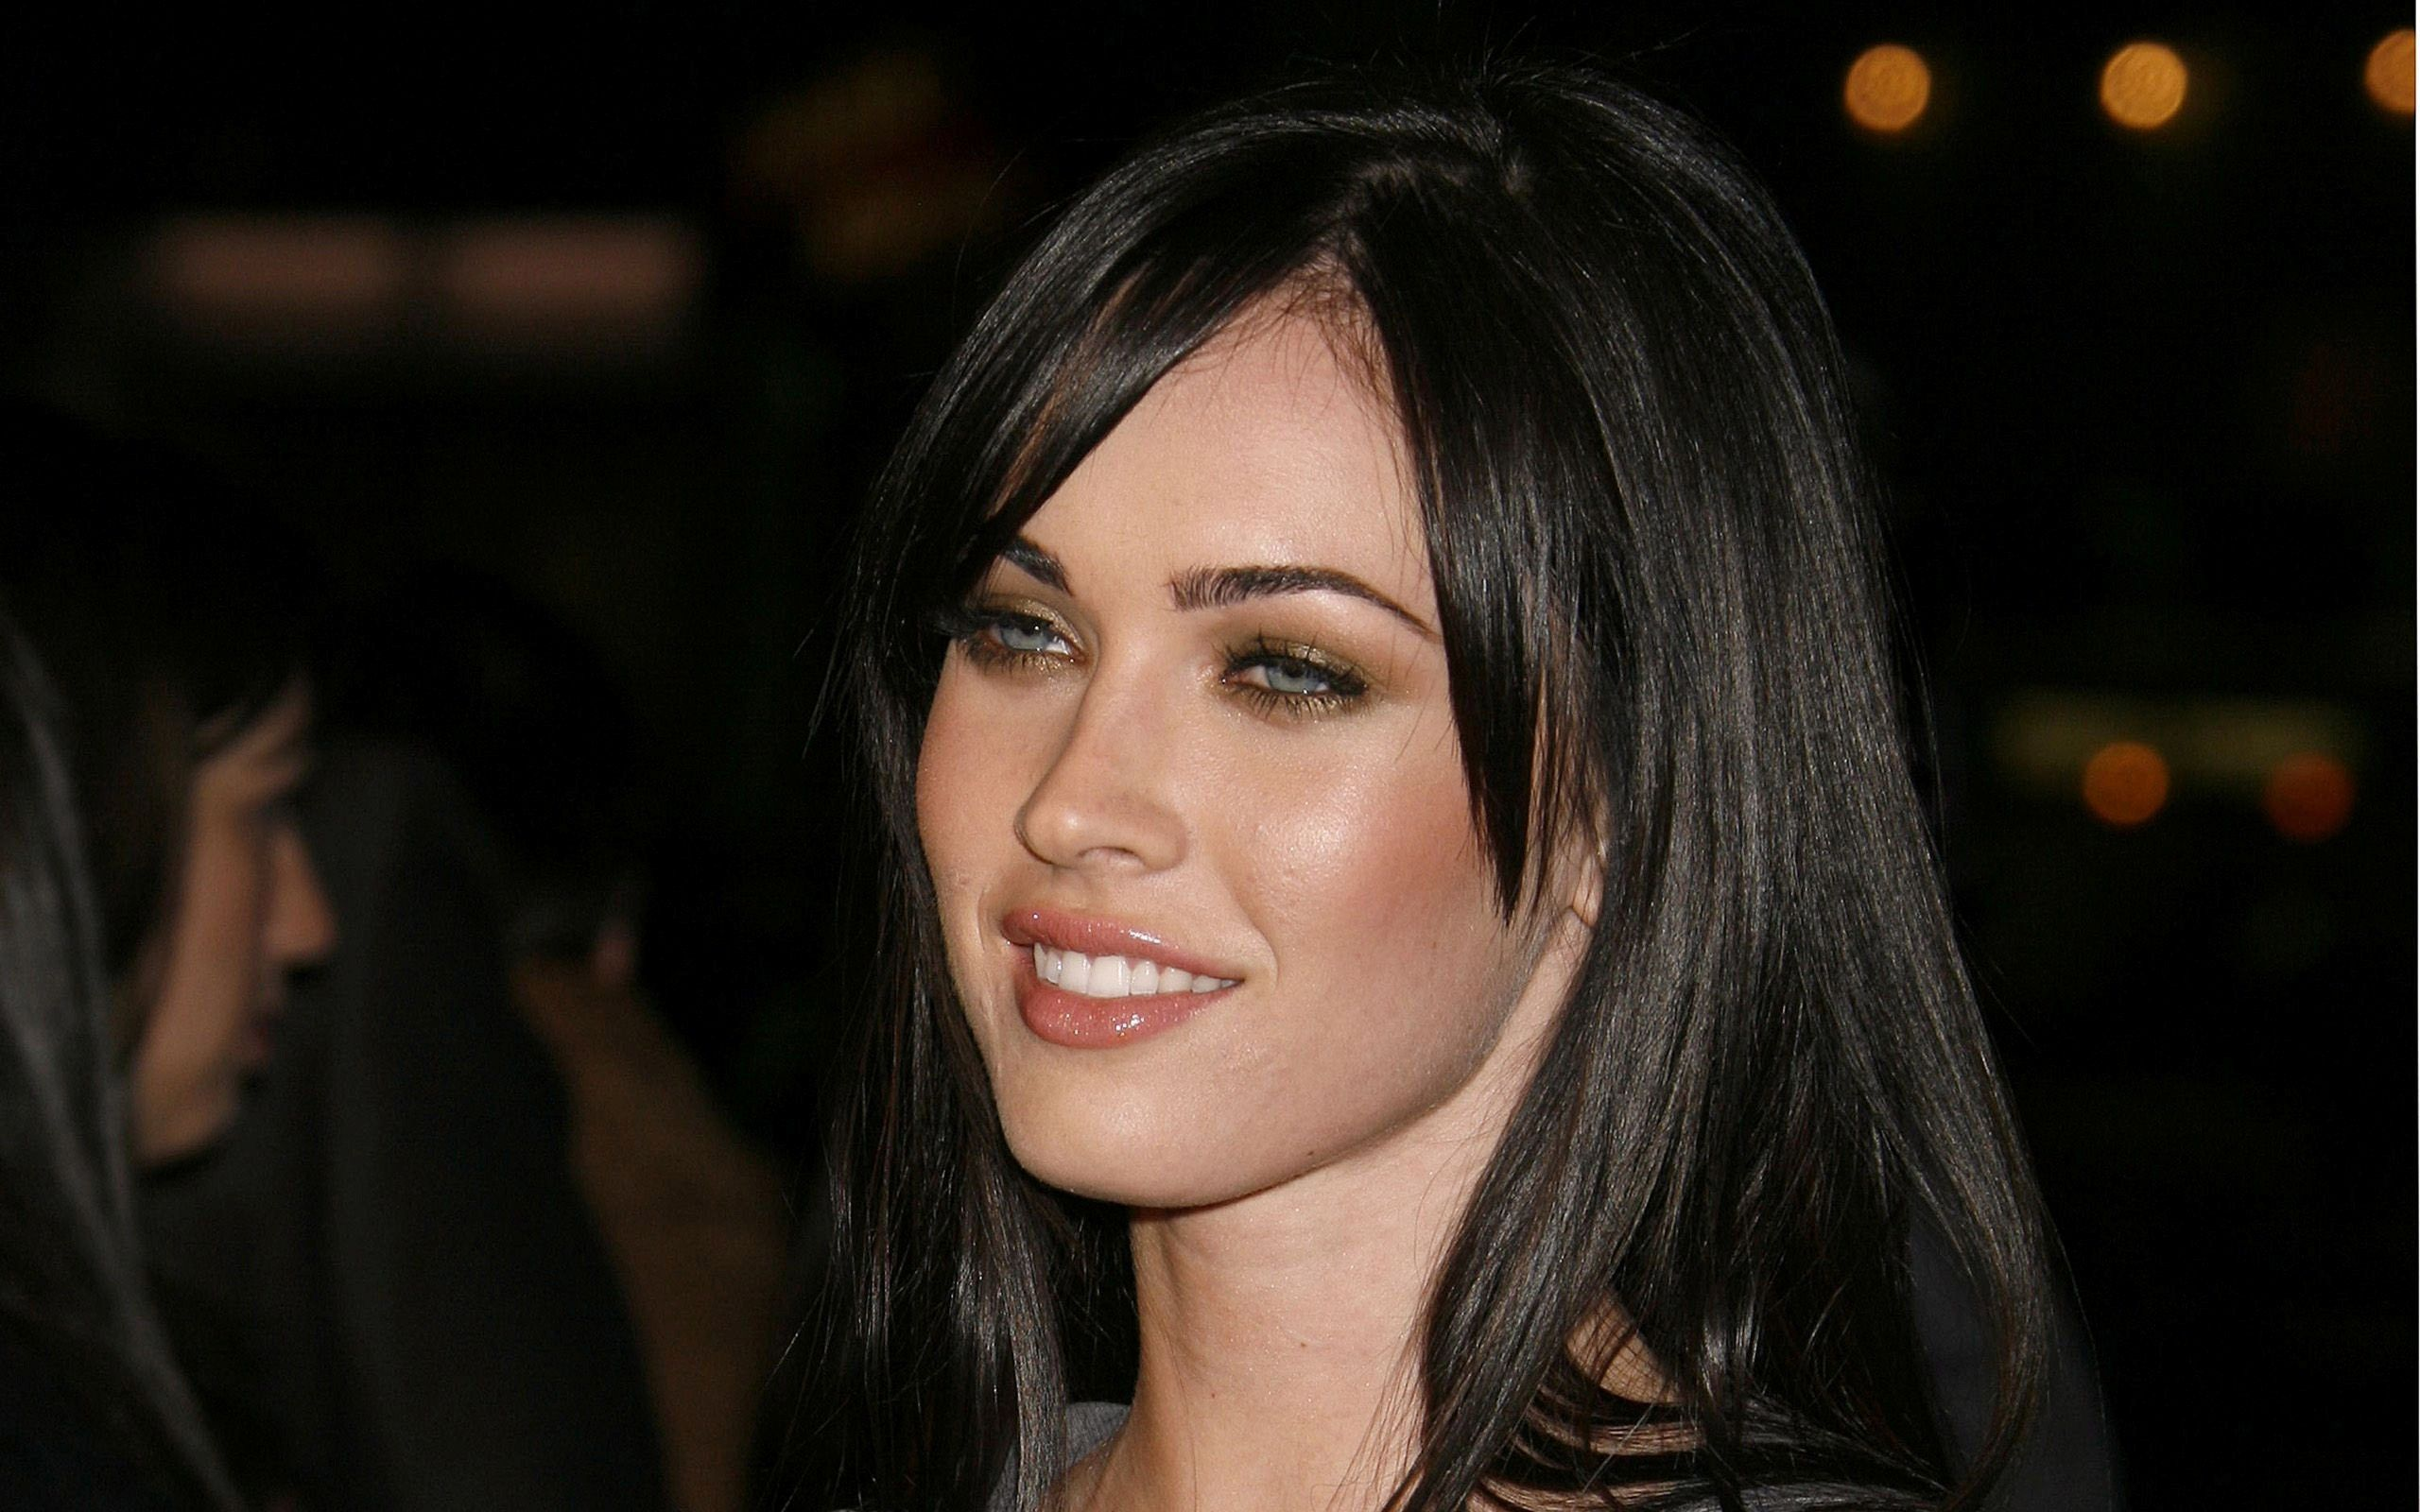 megan fox wallpapers download wallpaper pinterest megan fox